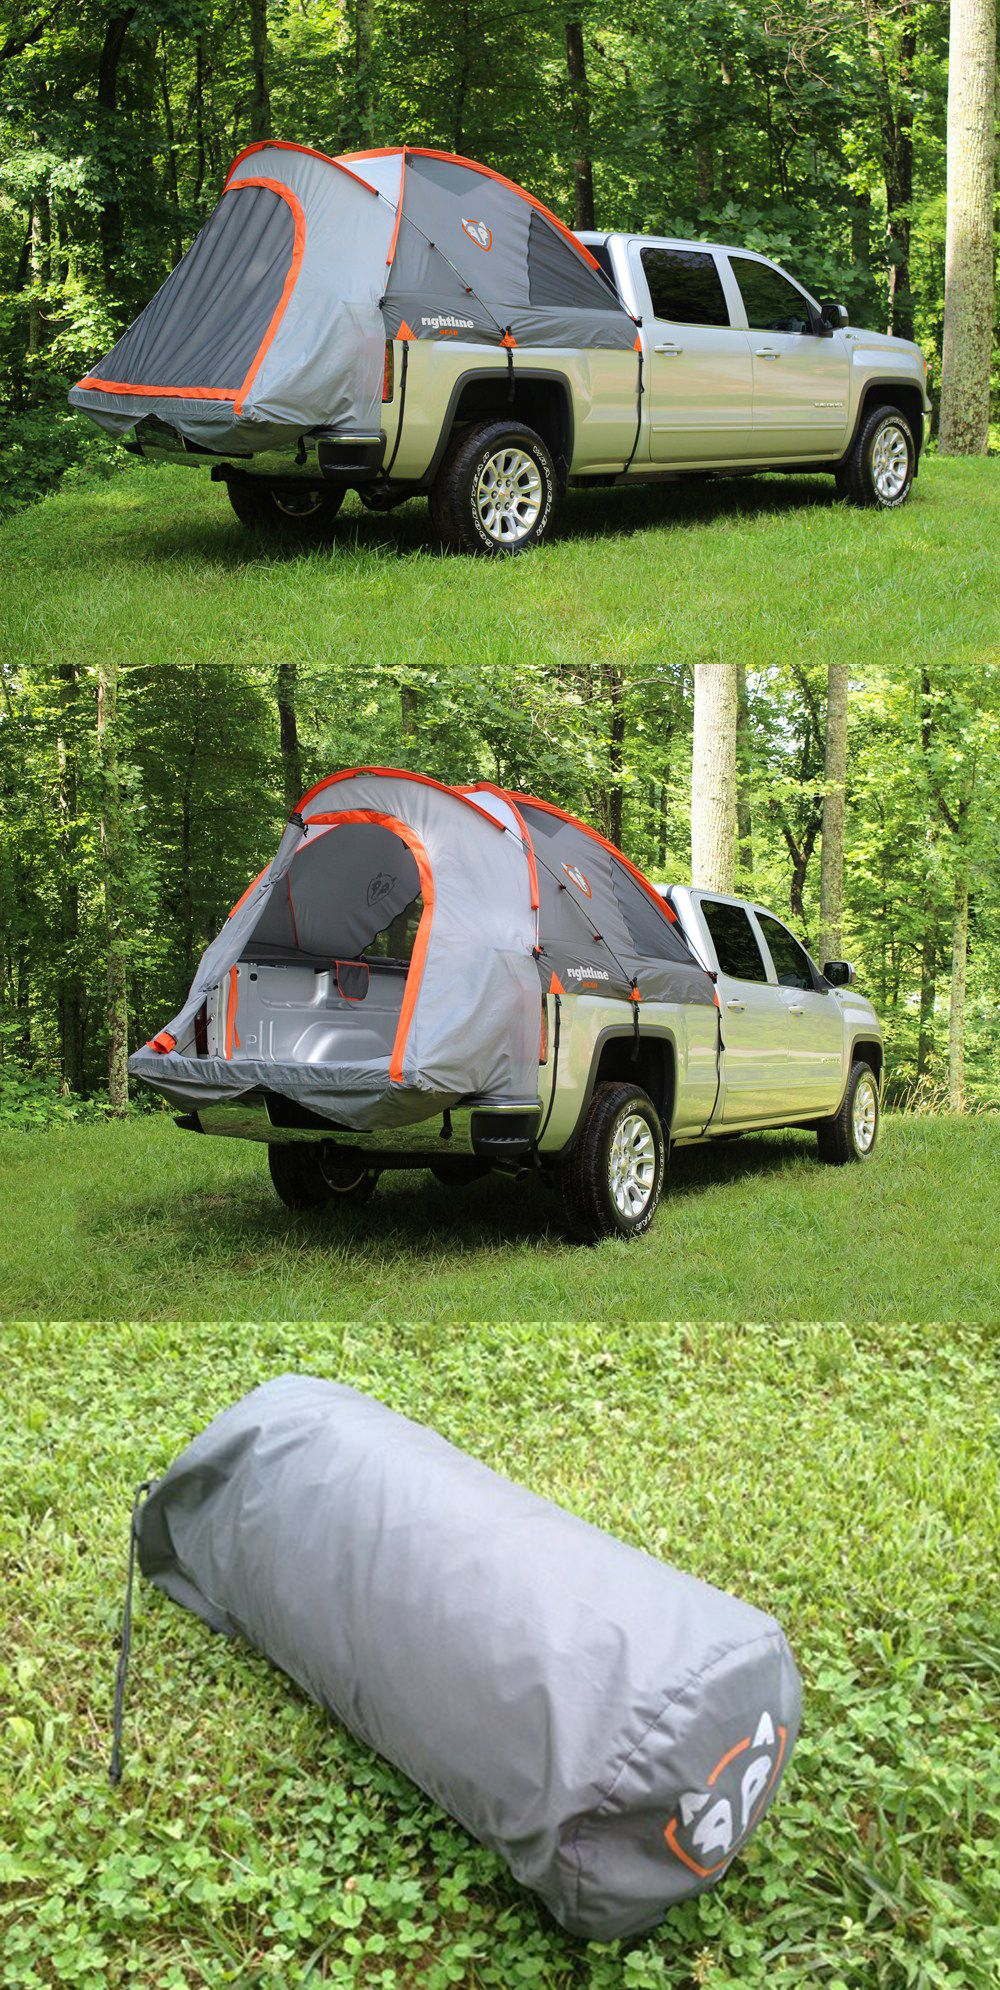 Camp Virtually Anywhere You Can Park With A Truck Tent Compatible The Gmc Sierra This Mounts Easily Over S Bed No Tarps